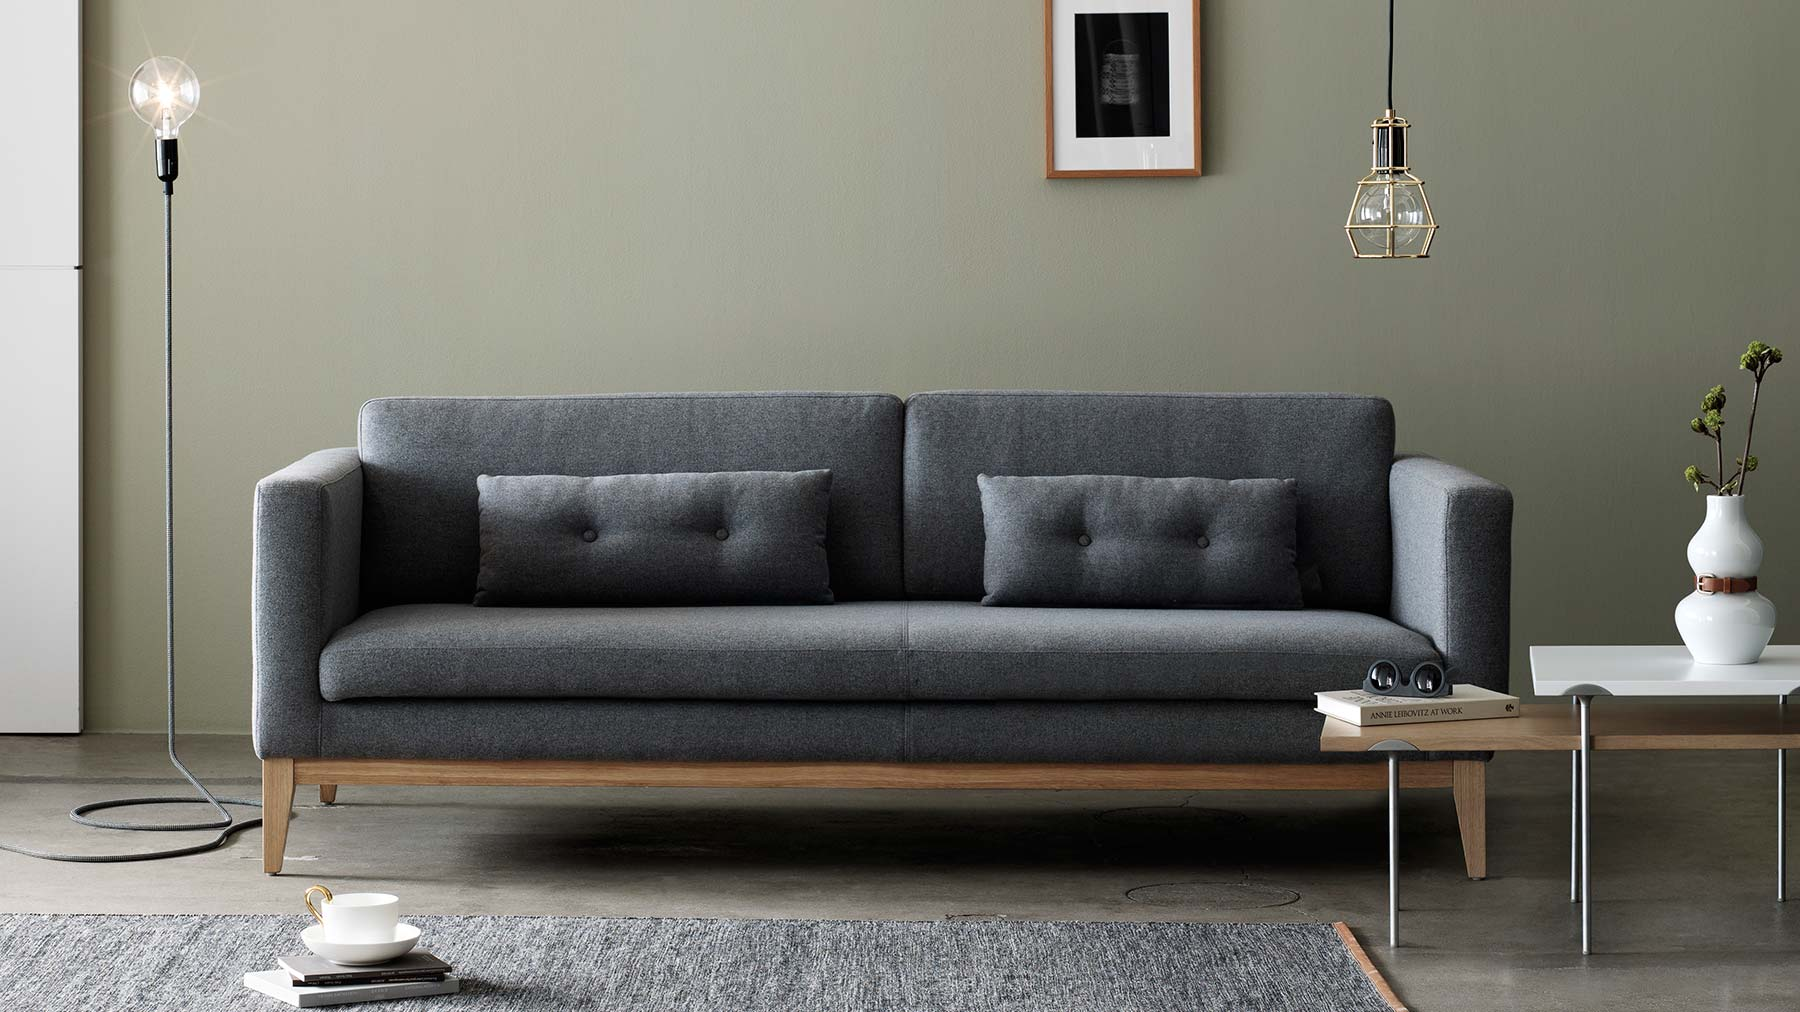 Majestic sofa design day sofa + cord lamp + work lamp + etage nest of tables vsmcxrr